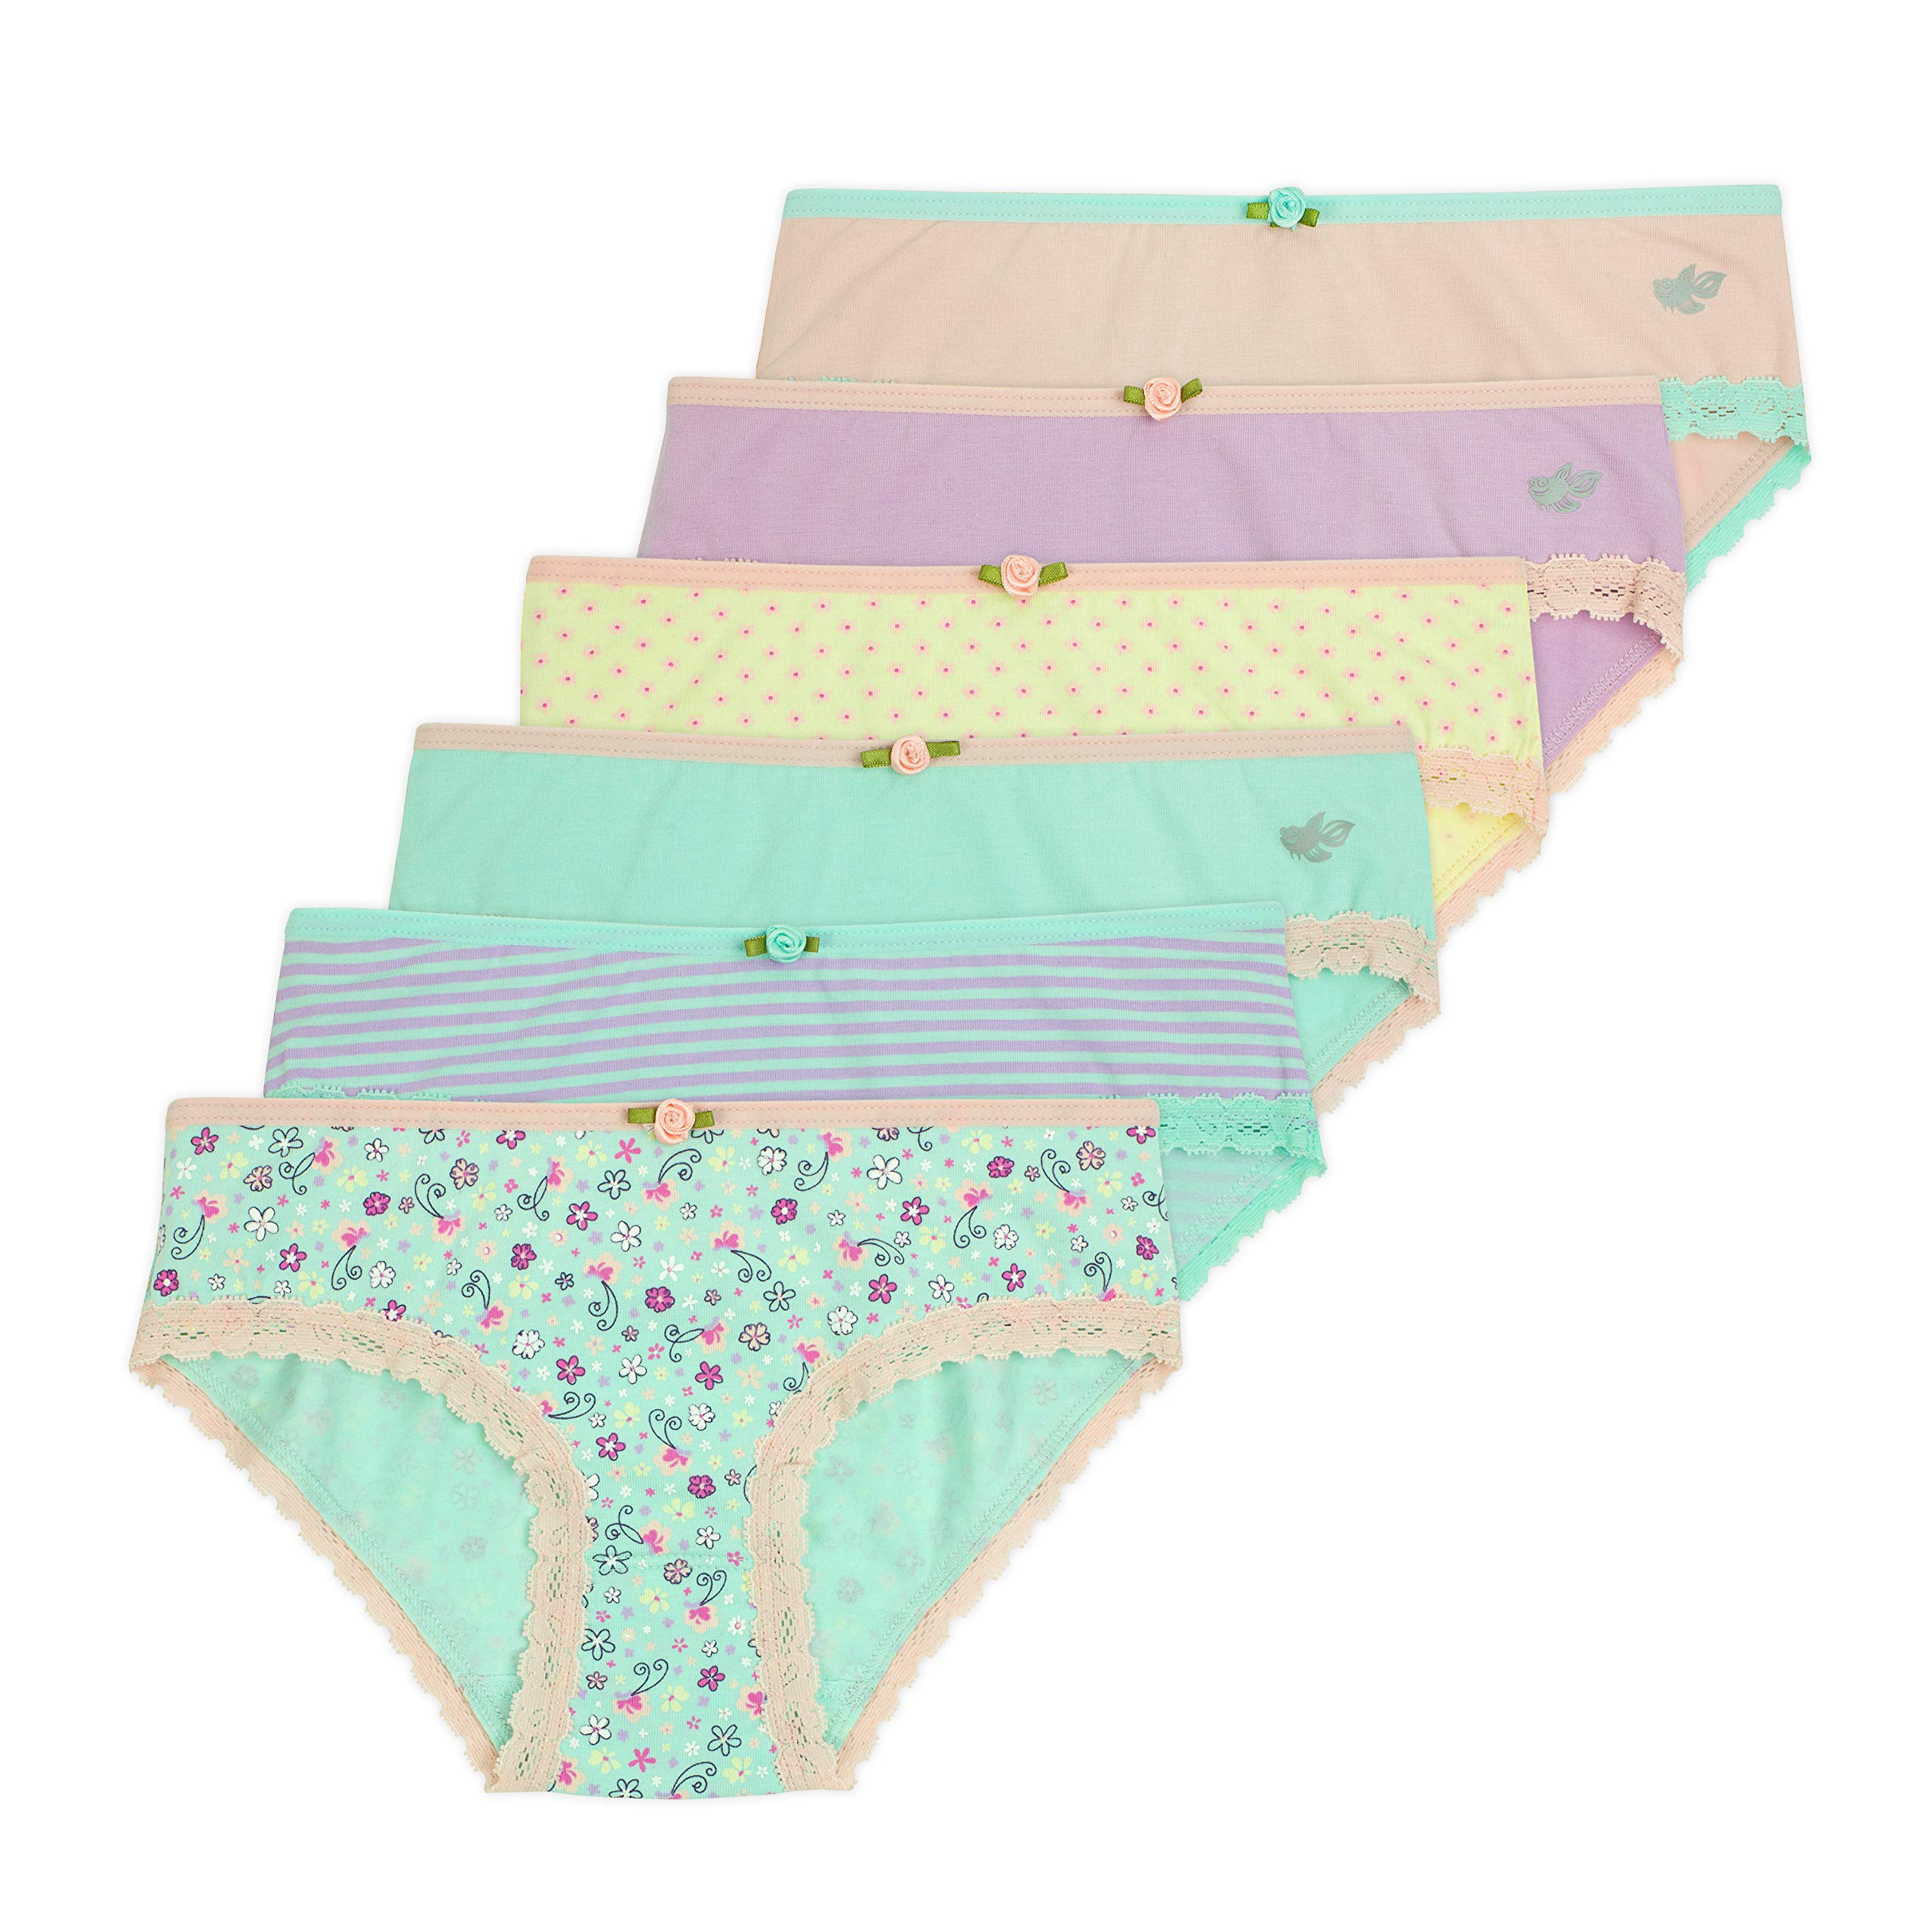 fea7c296358c Lucky & Me | Ava Little Girls Bikini Underwear | Tagless | Soft Cotton  Modal Spandex